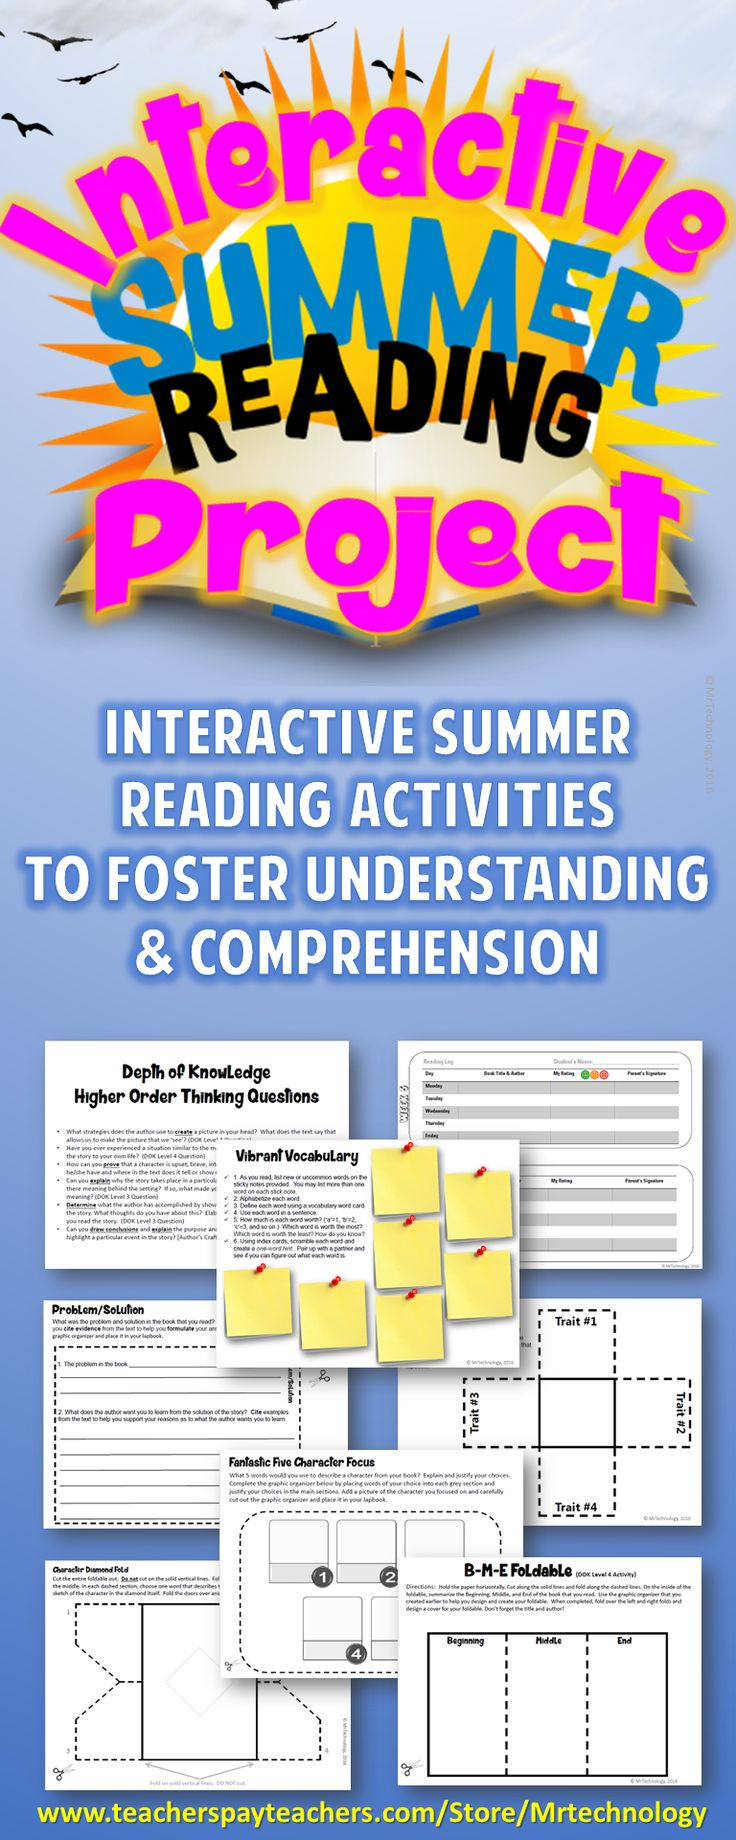 nteractive Reading Project Activities to Foster Understanding & Comprehension during summer vacation Make summer reading not only fun, but interactive with in a differentiated way! Not all students enjoy reading, but with our Summer Interactive Reading Lapbook Project, students will have a sense of self-directed learning as they choose what to use for their lapbook project! Perfect for Summer Vacation Family Partnerships, Home School, or Summer Tutoring!